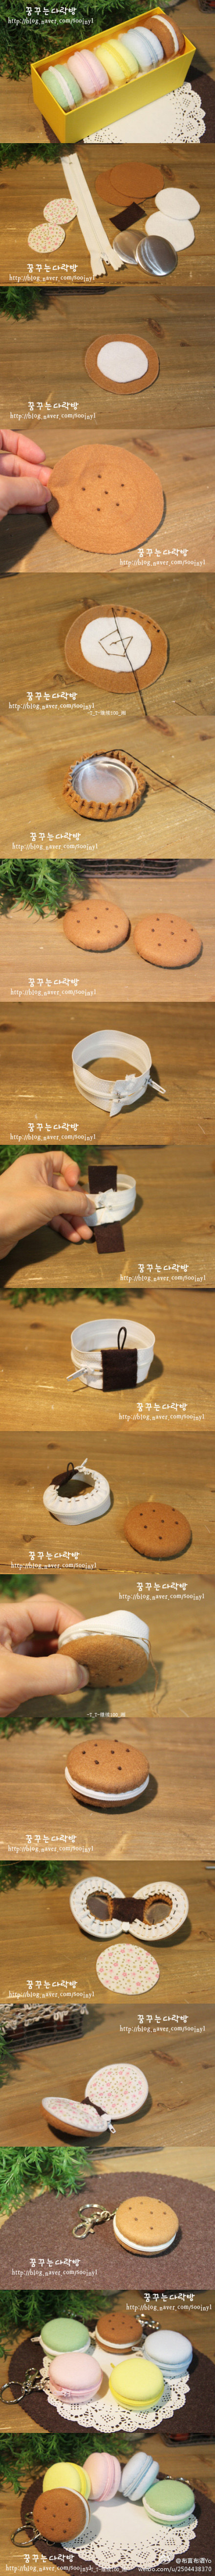 Macaron coin purse tutorial. Am so eager to try this!!